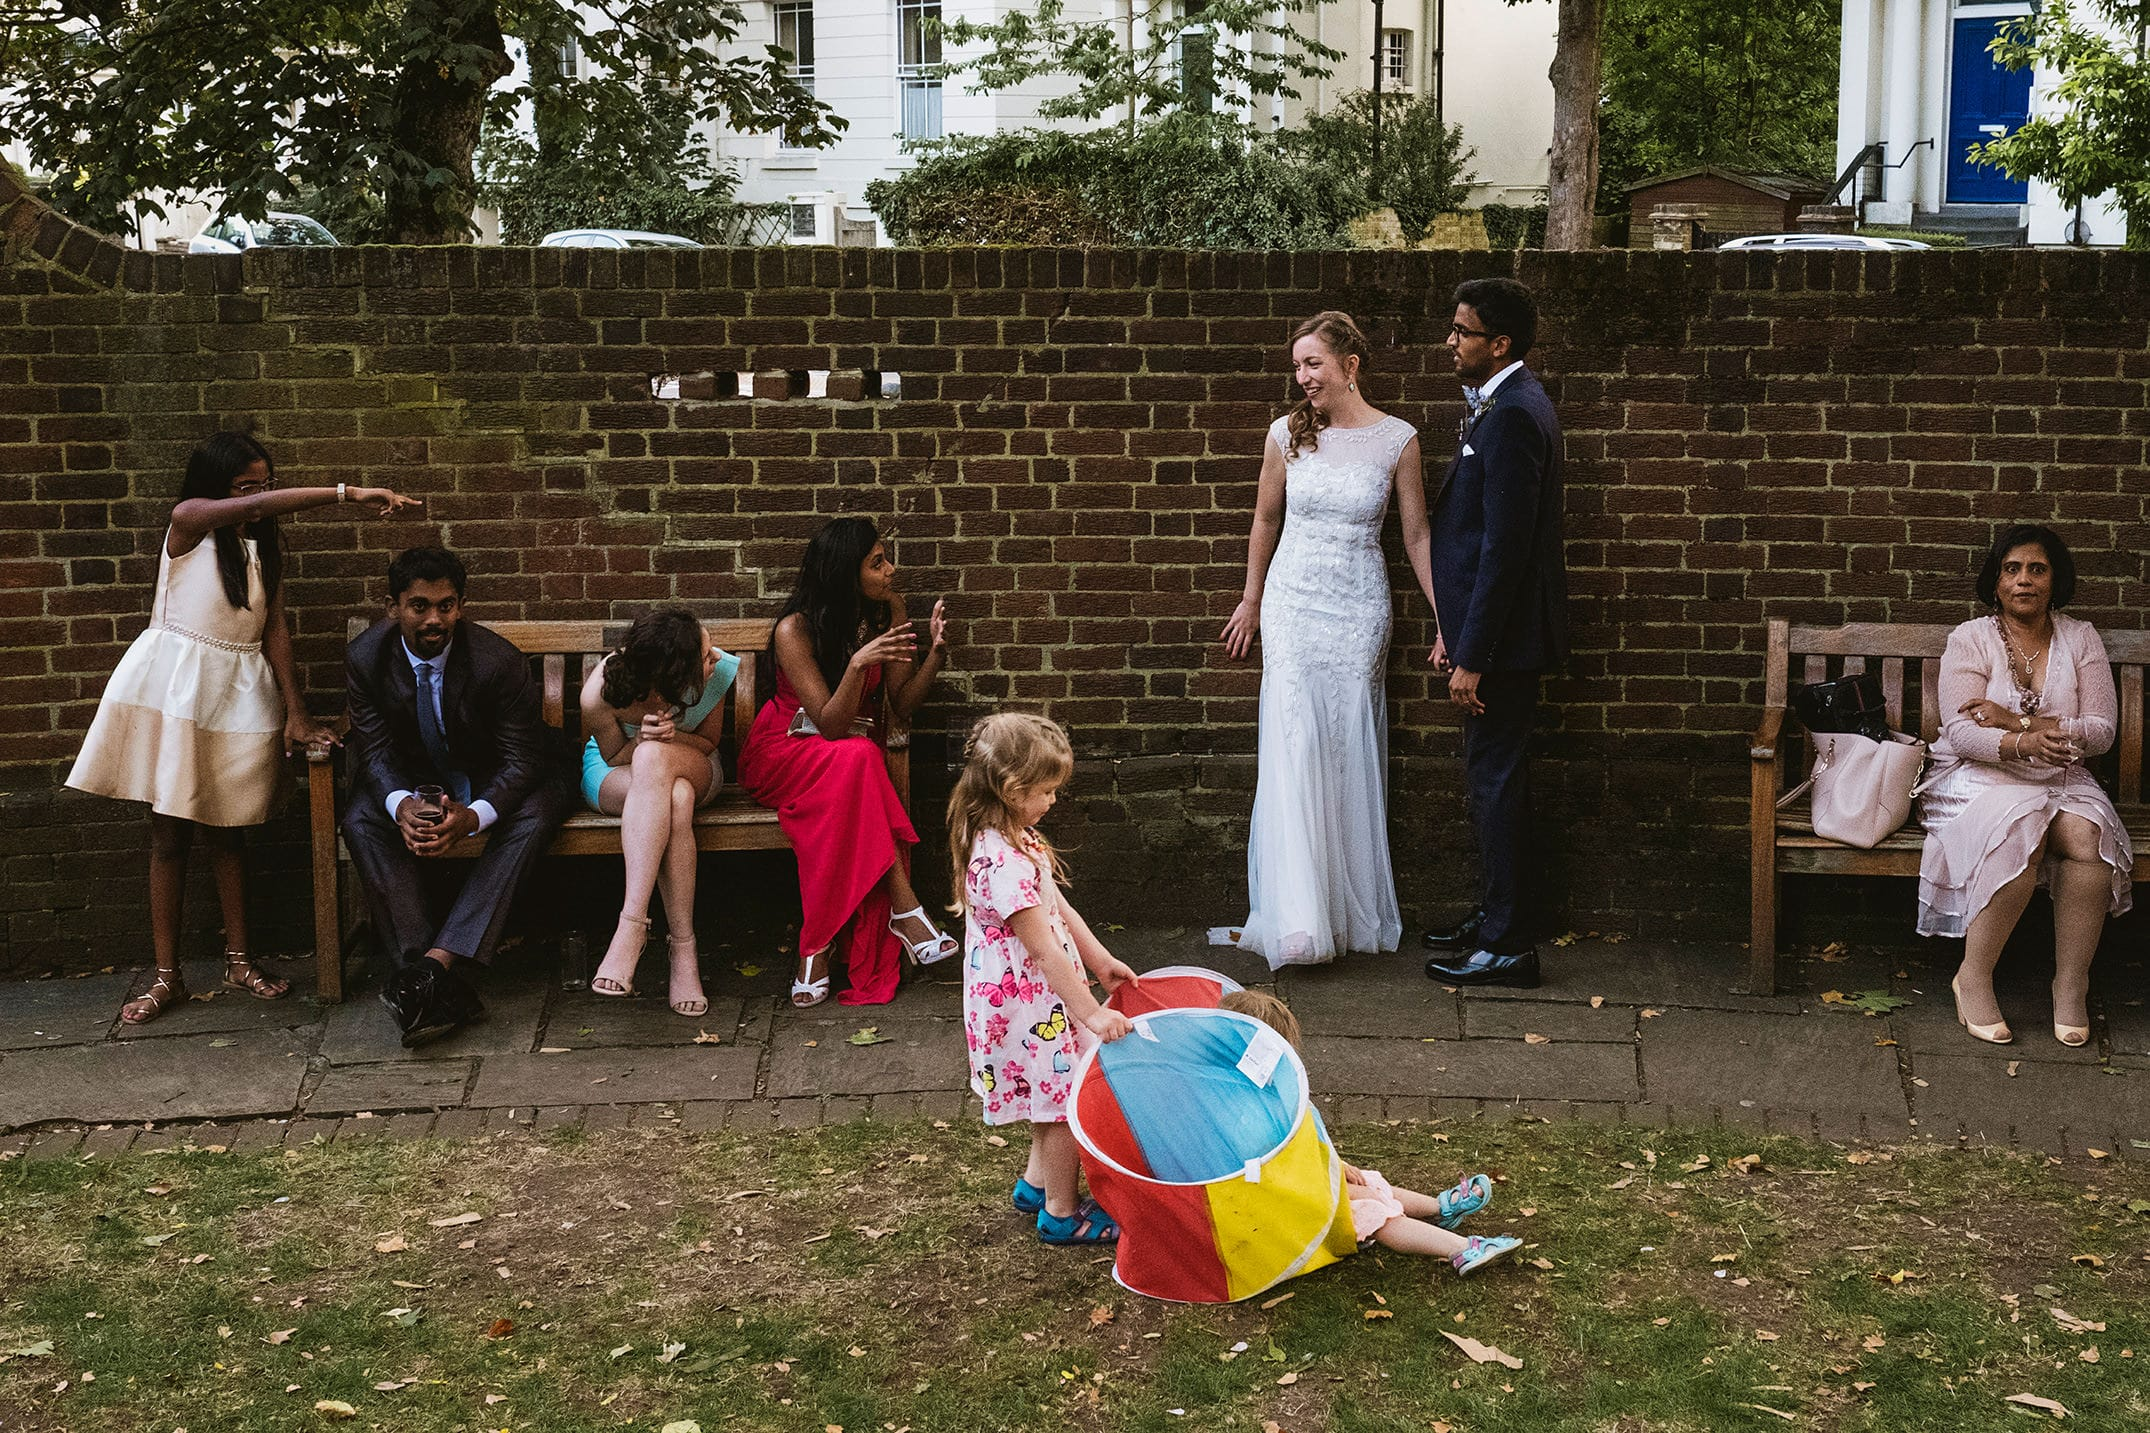 Cecil Sharp House bride and groom together at their London wedding reception